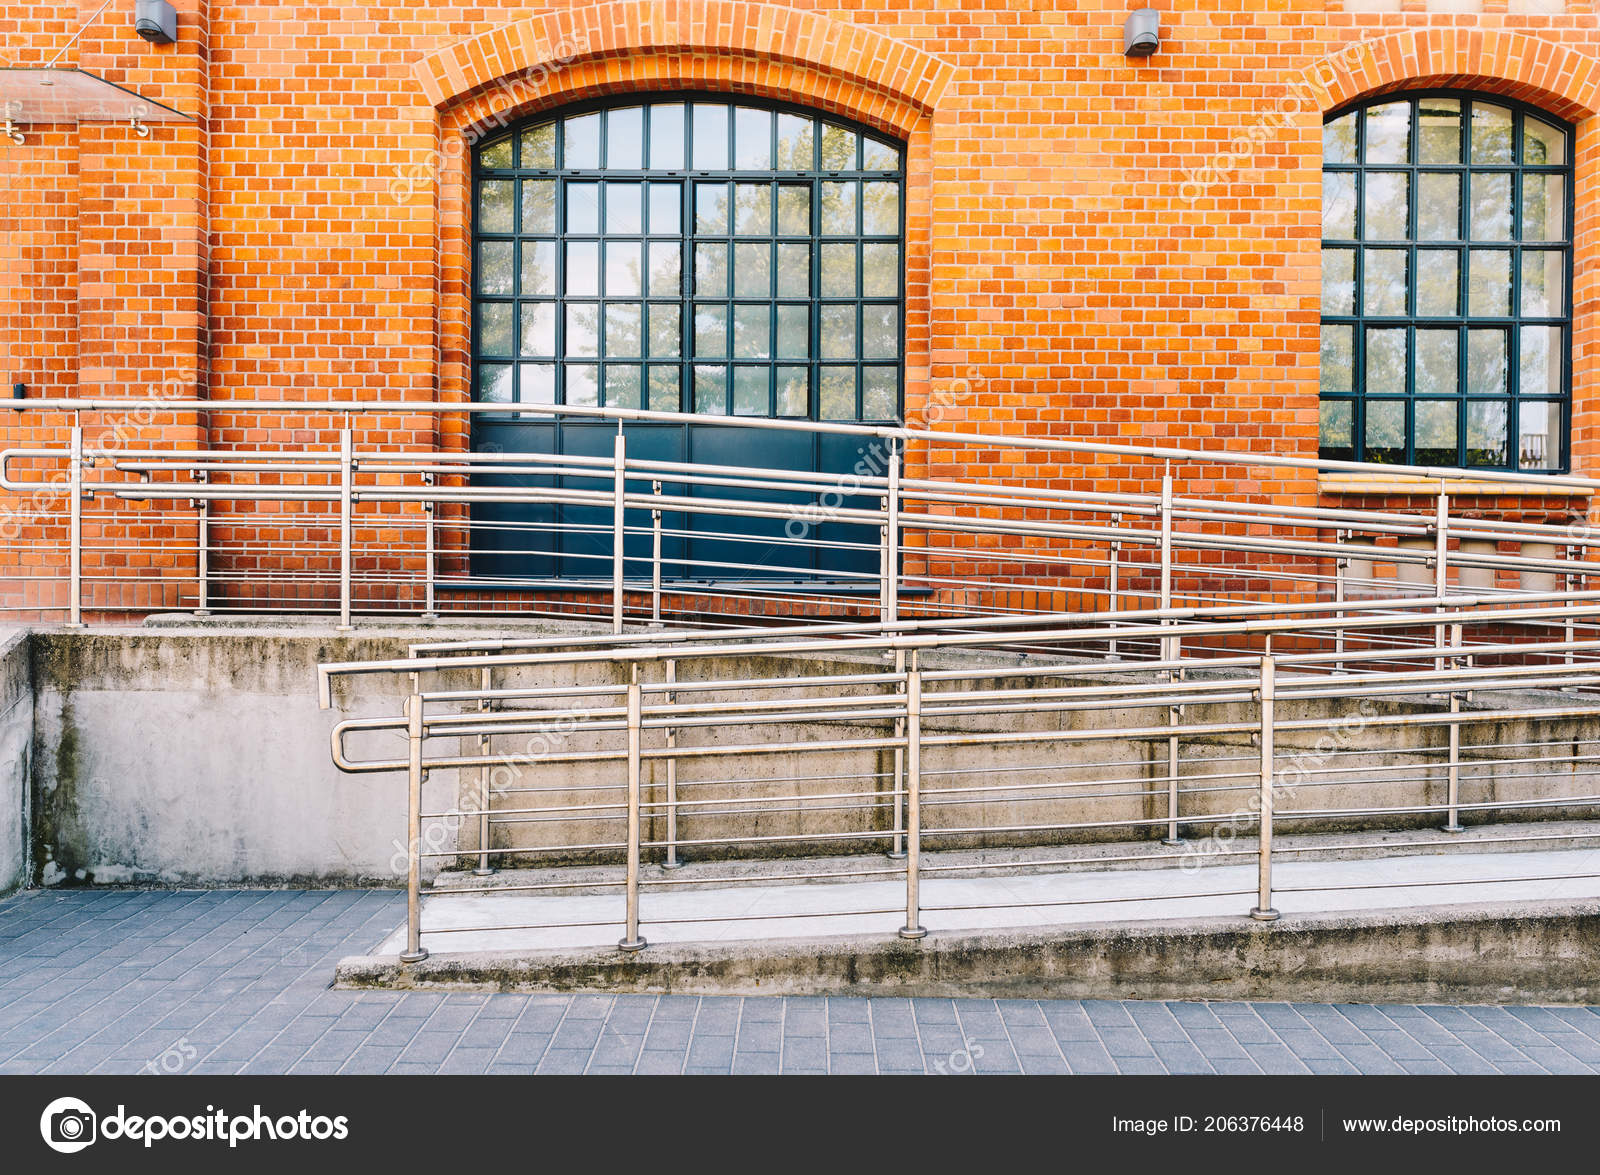 Concrete Ramp Way Stainless Steel Handrail Support